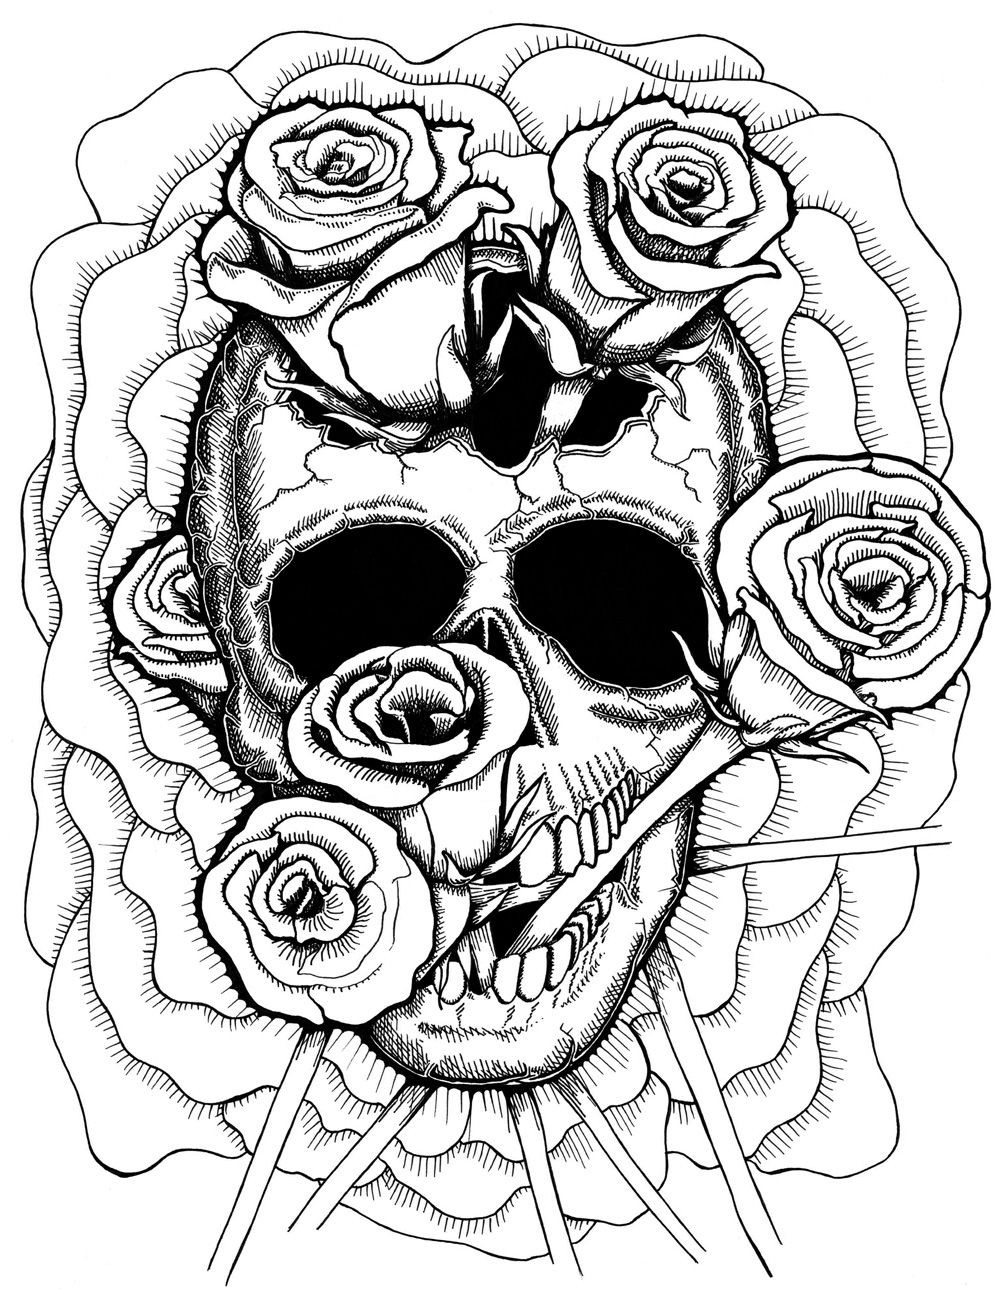 trippy coloring page download or print this amazing coloring page 13 pics of trippy coloring page